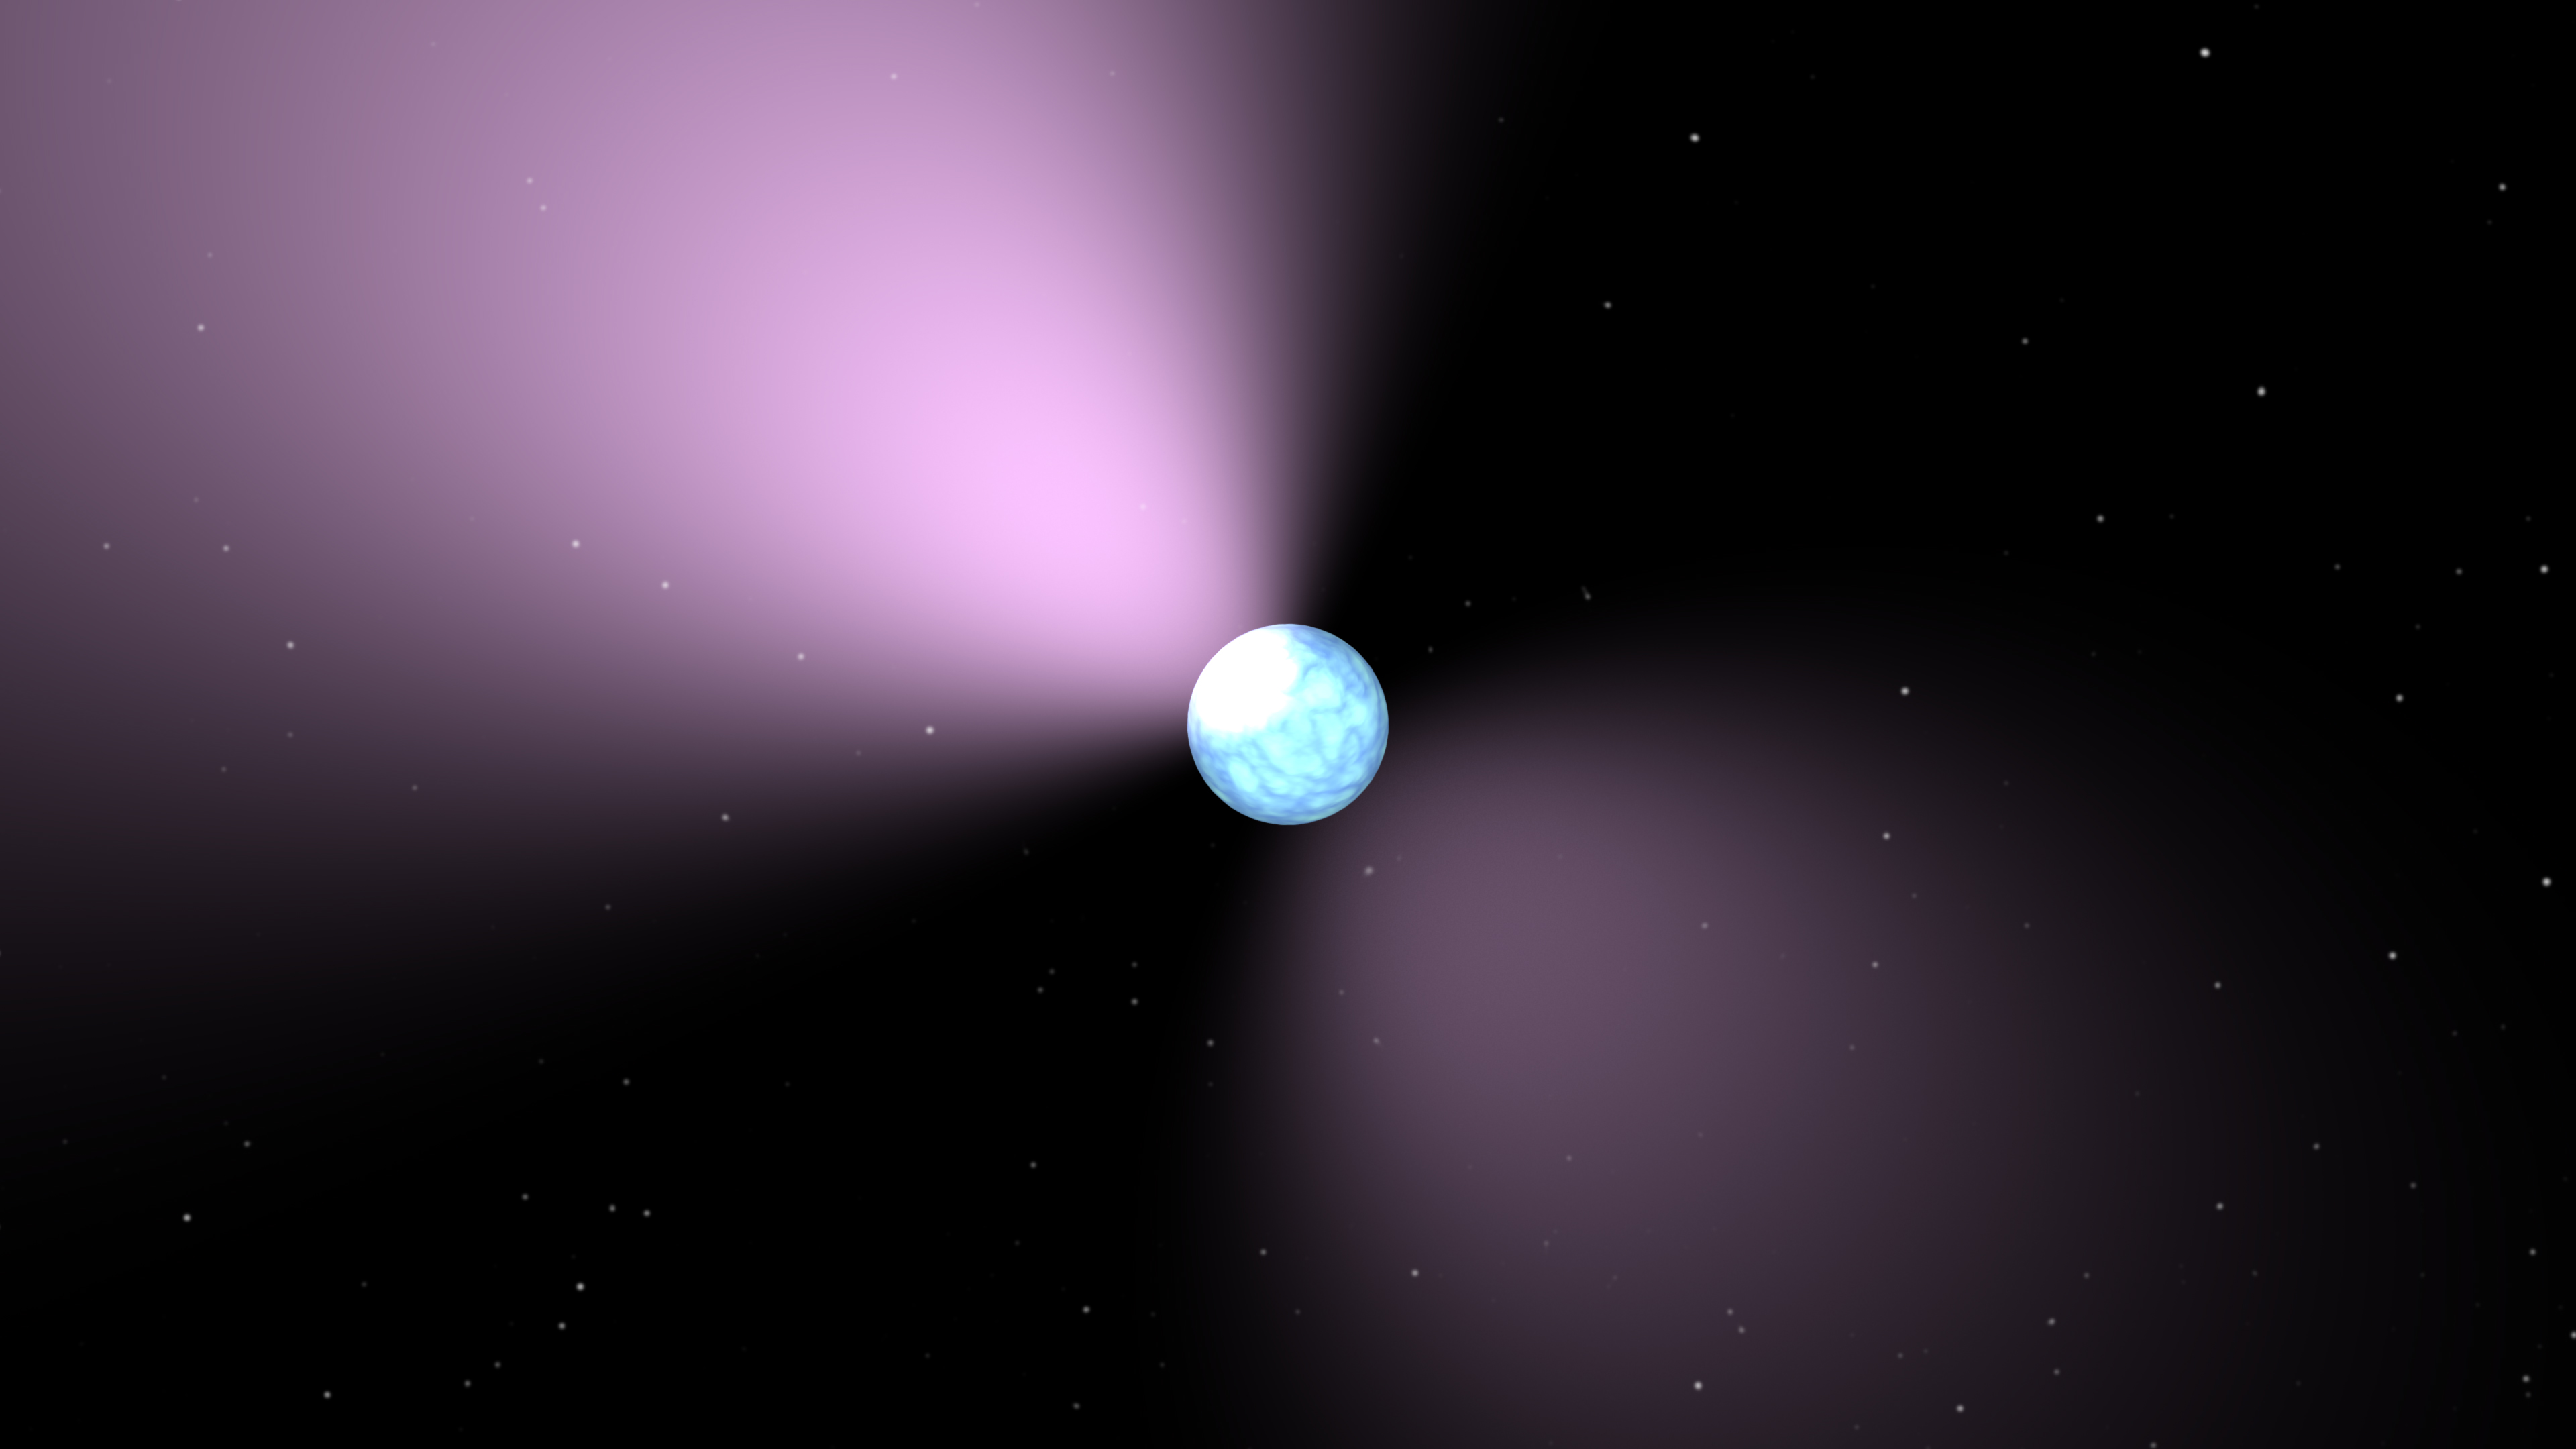 The Case of the 'Missing Link' Neutron Star | NASA